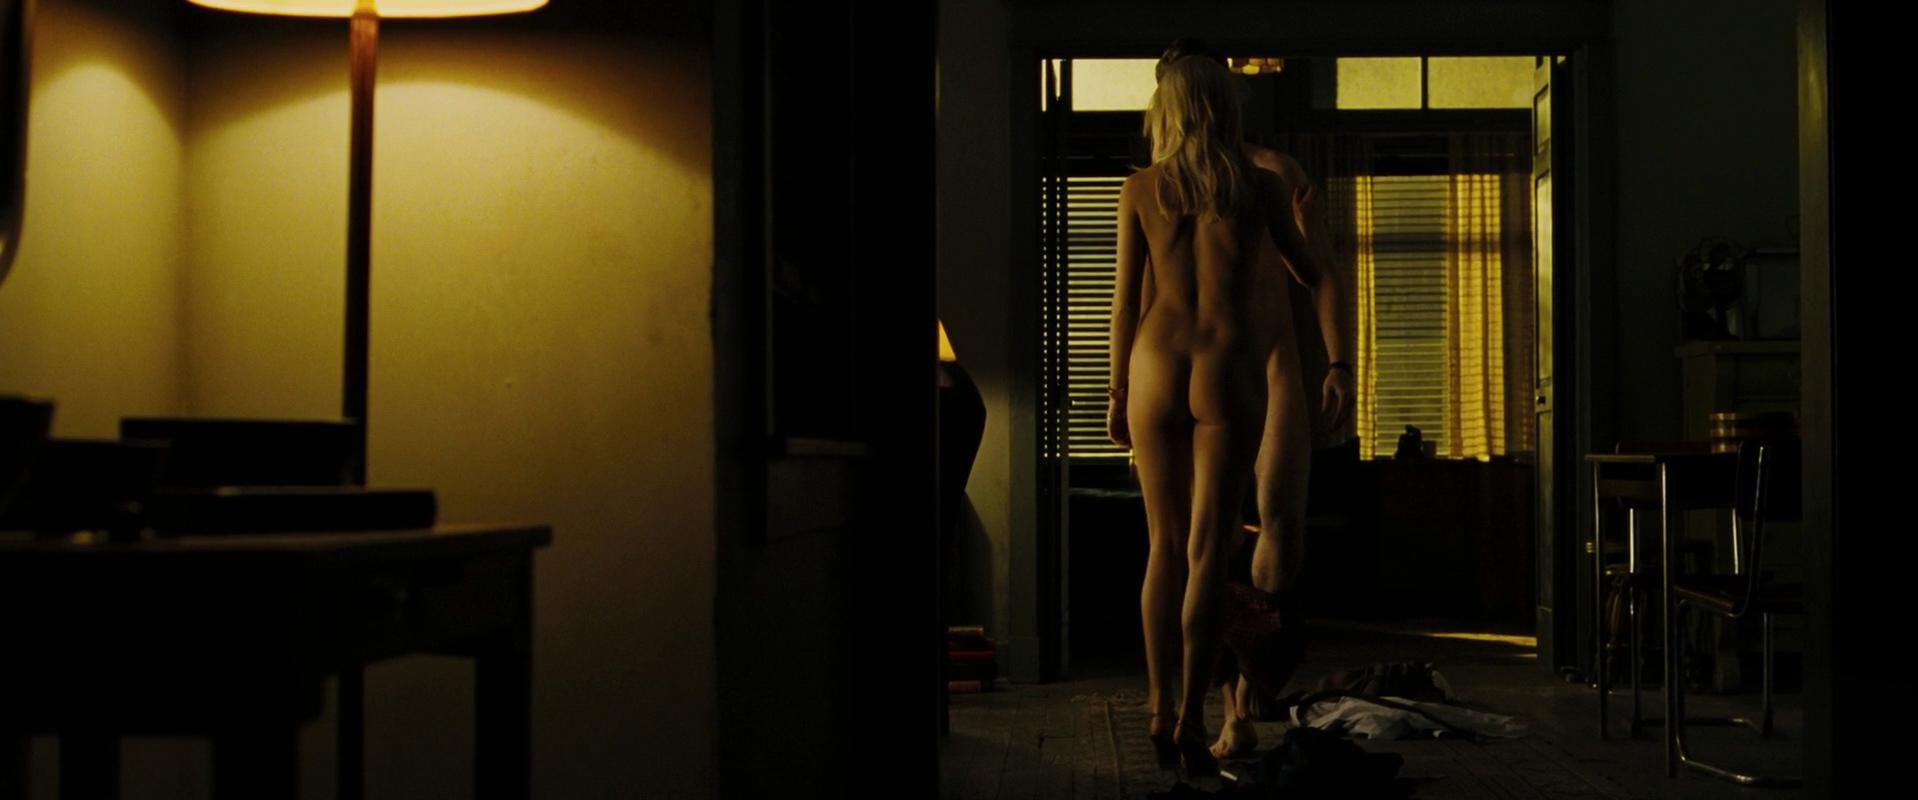 Sienna Miller nude - The Mysteries of Pittsburgh (2008)